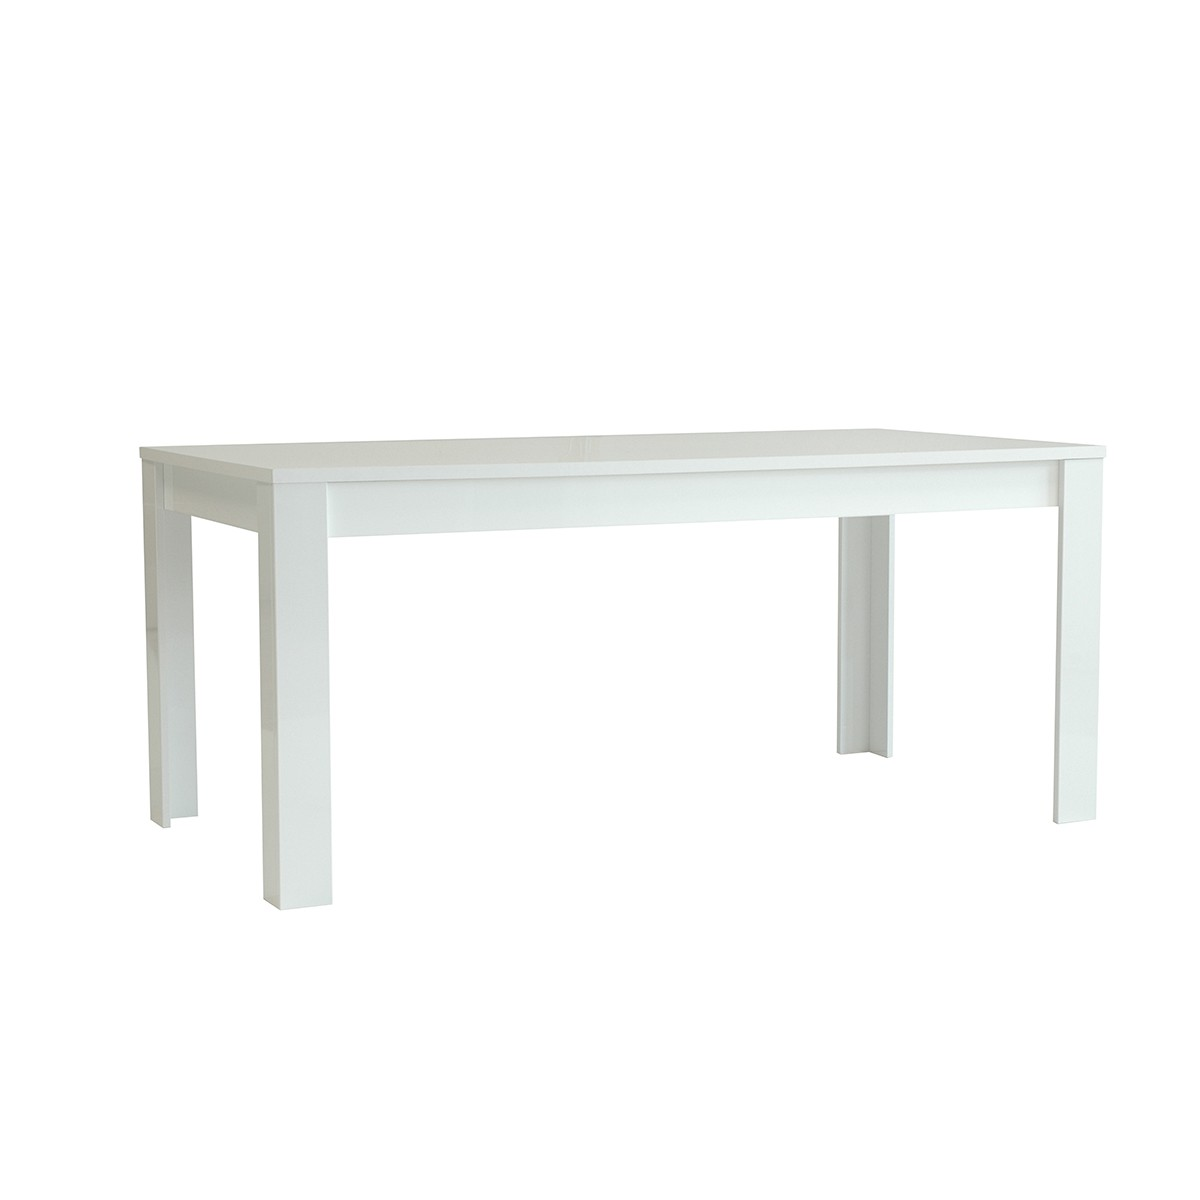 Table laquee blanche rectangulaire 180 cm mooviin for Table laquee blanche